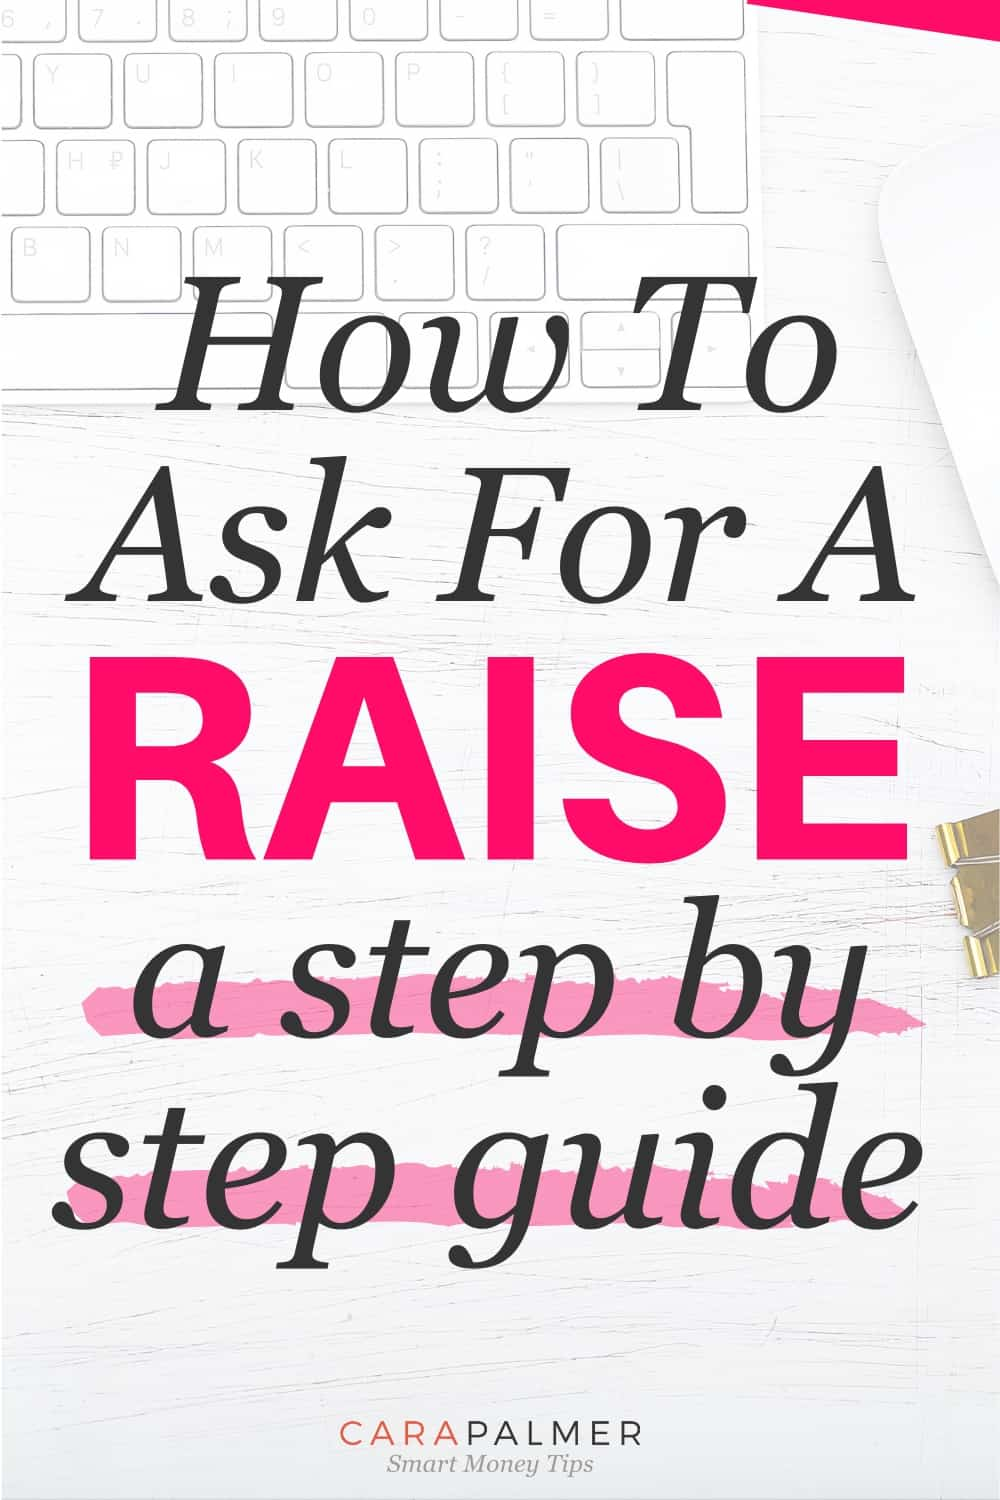 A step by step guide to asking for a raise